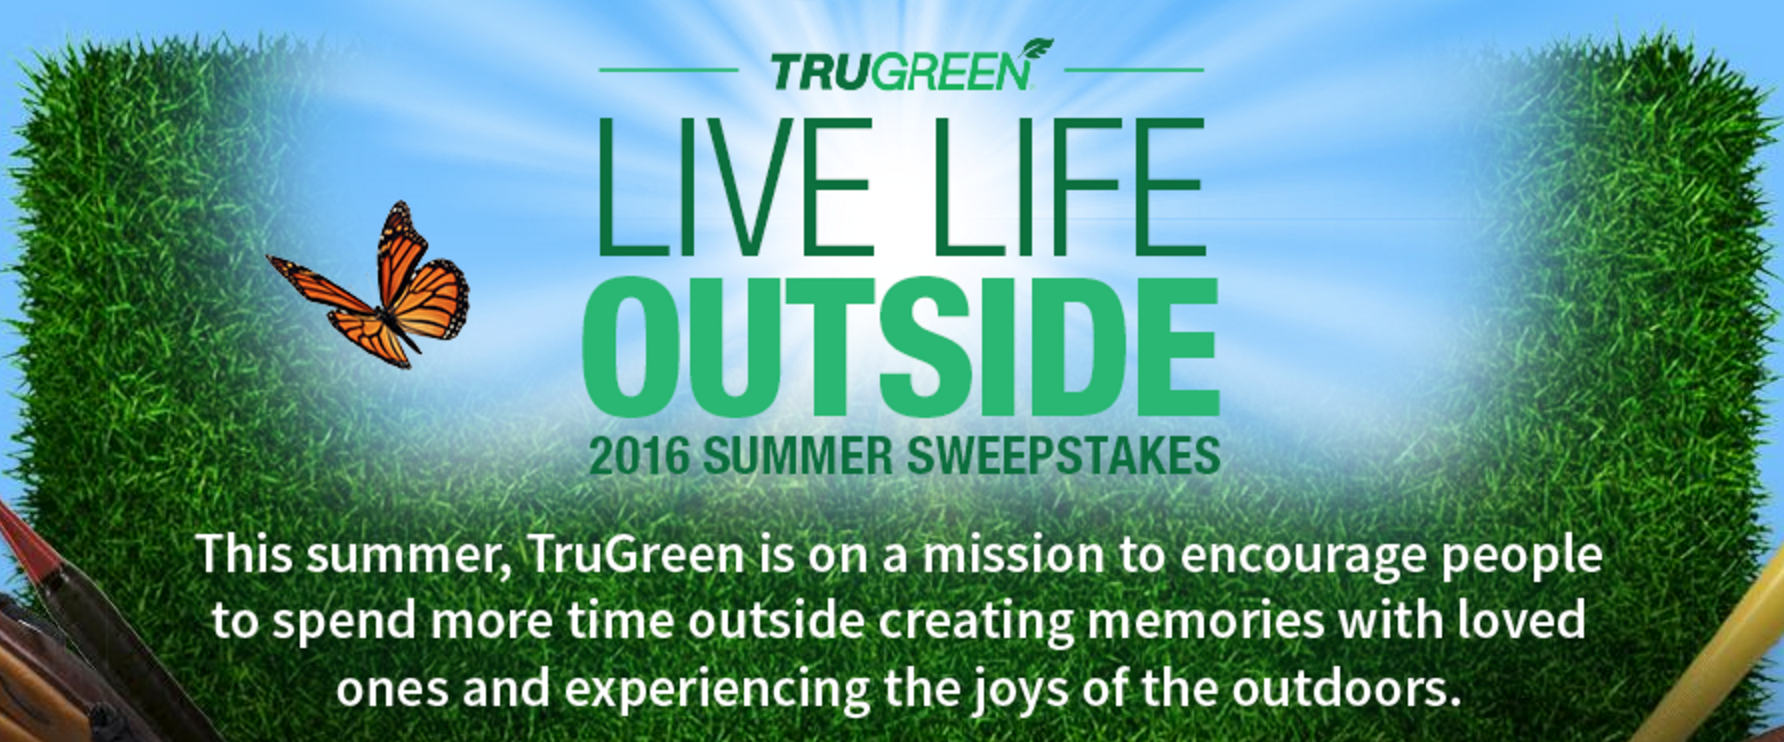 TruGreen #LiveLifeOutside 2016 Sweepstakes